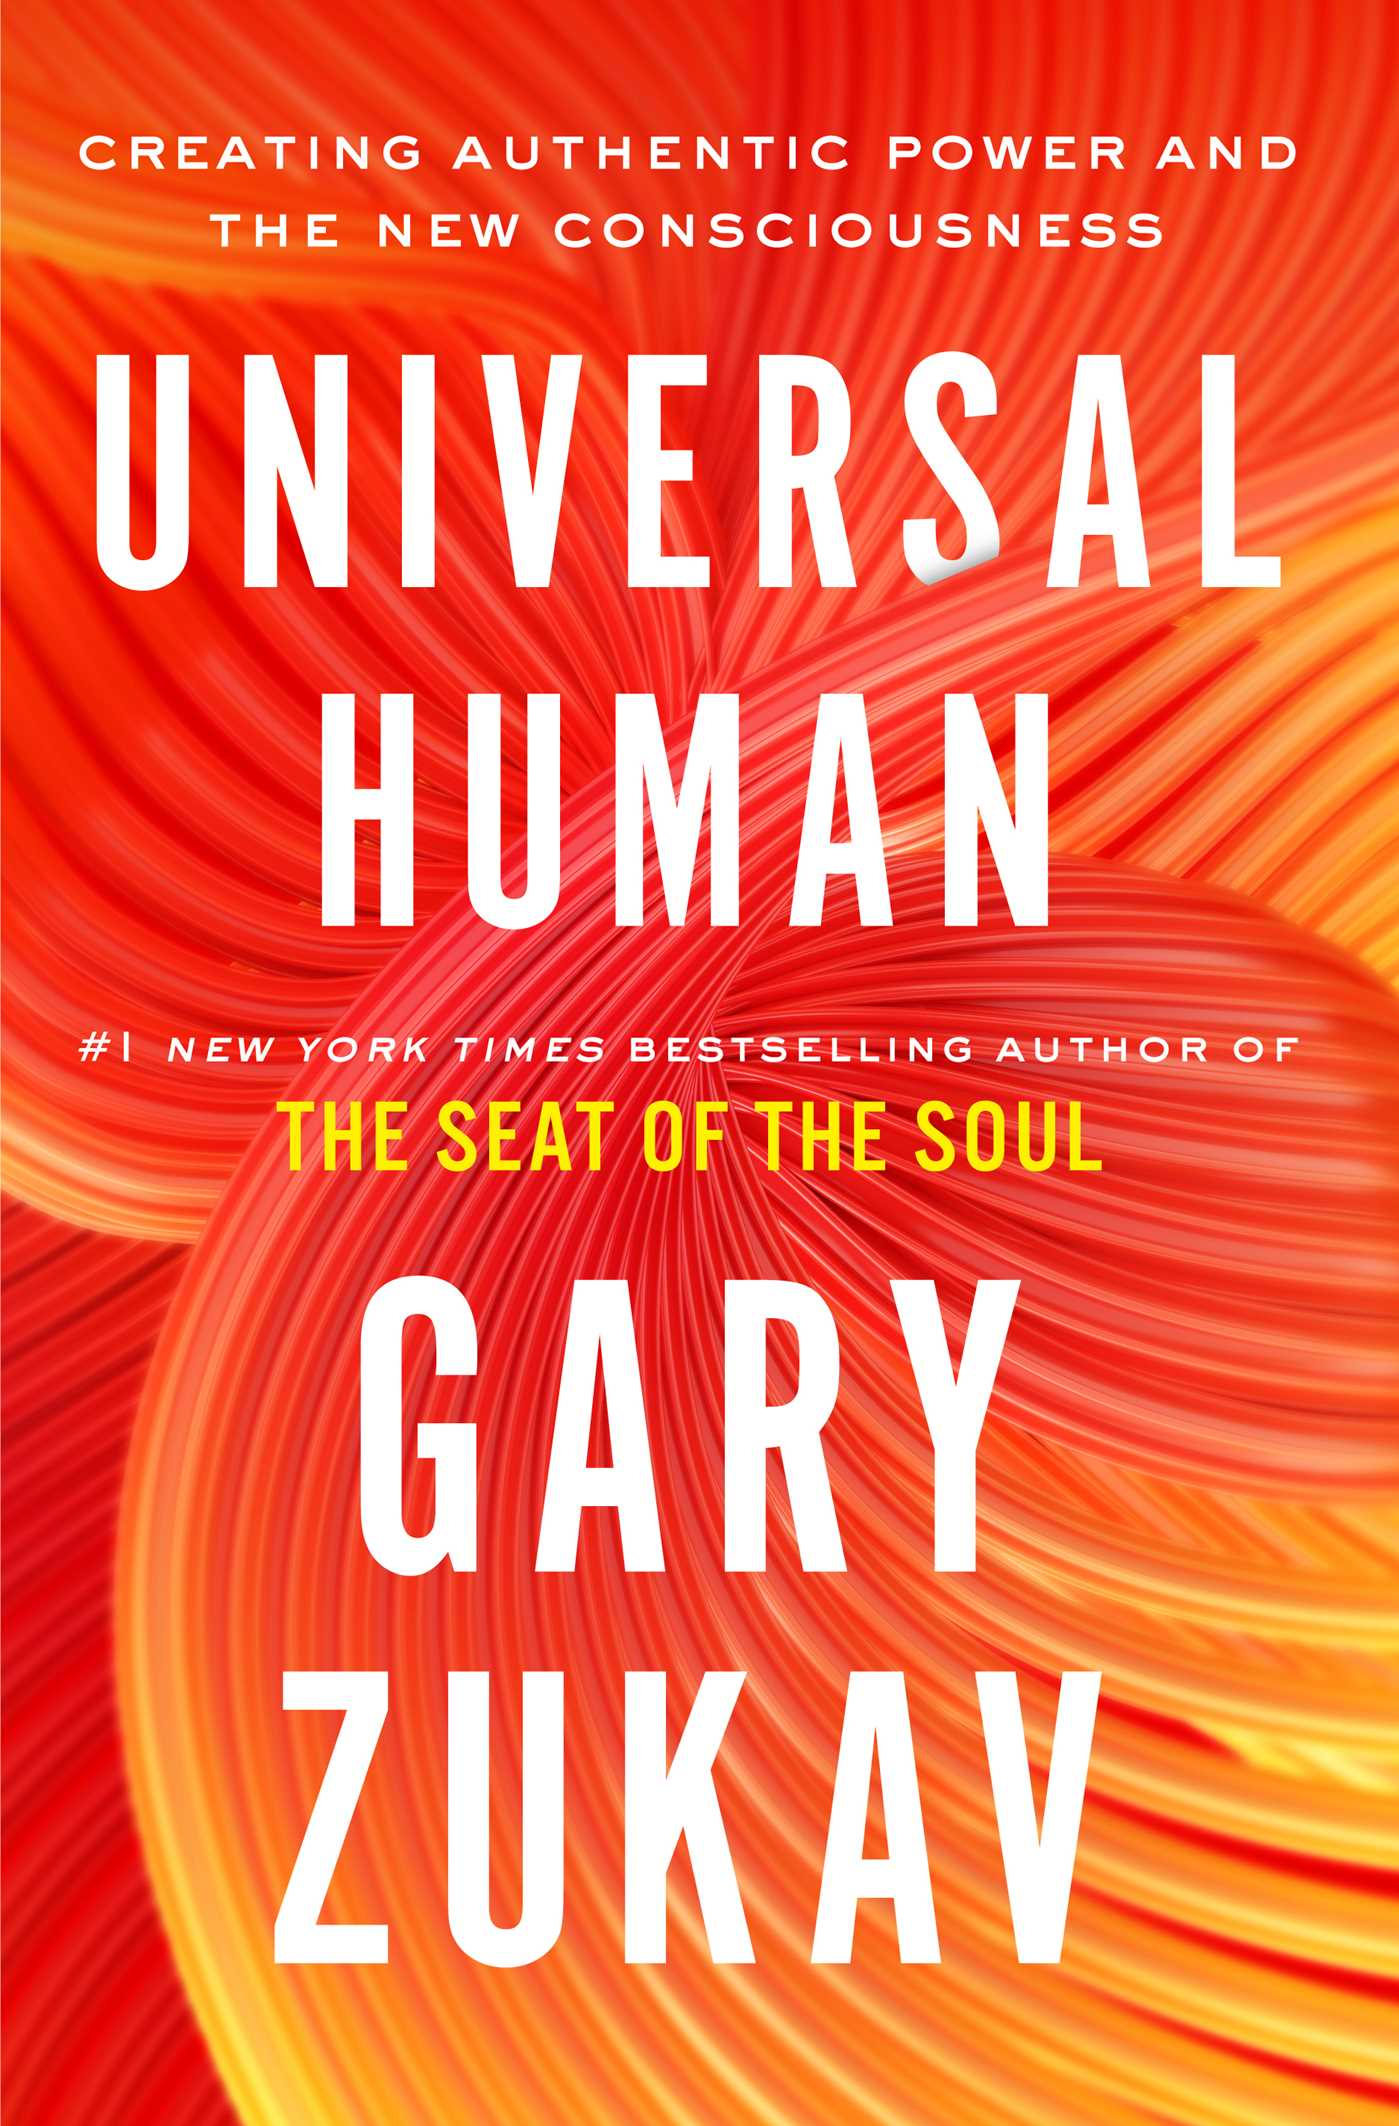 Universal Human: Creating Authentic Power and the New Consciousness